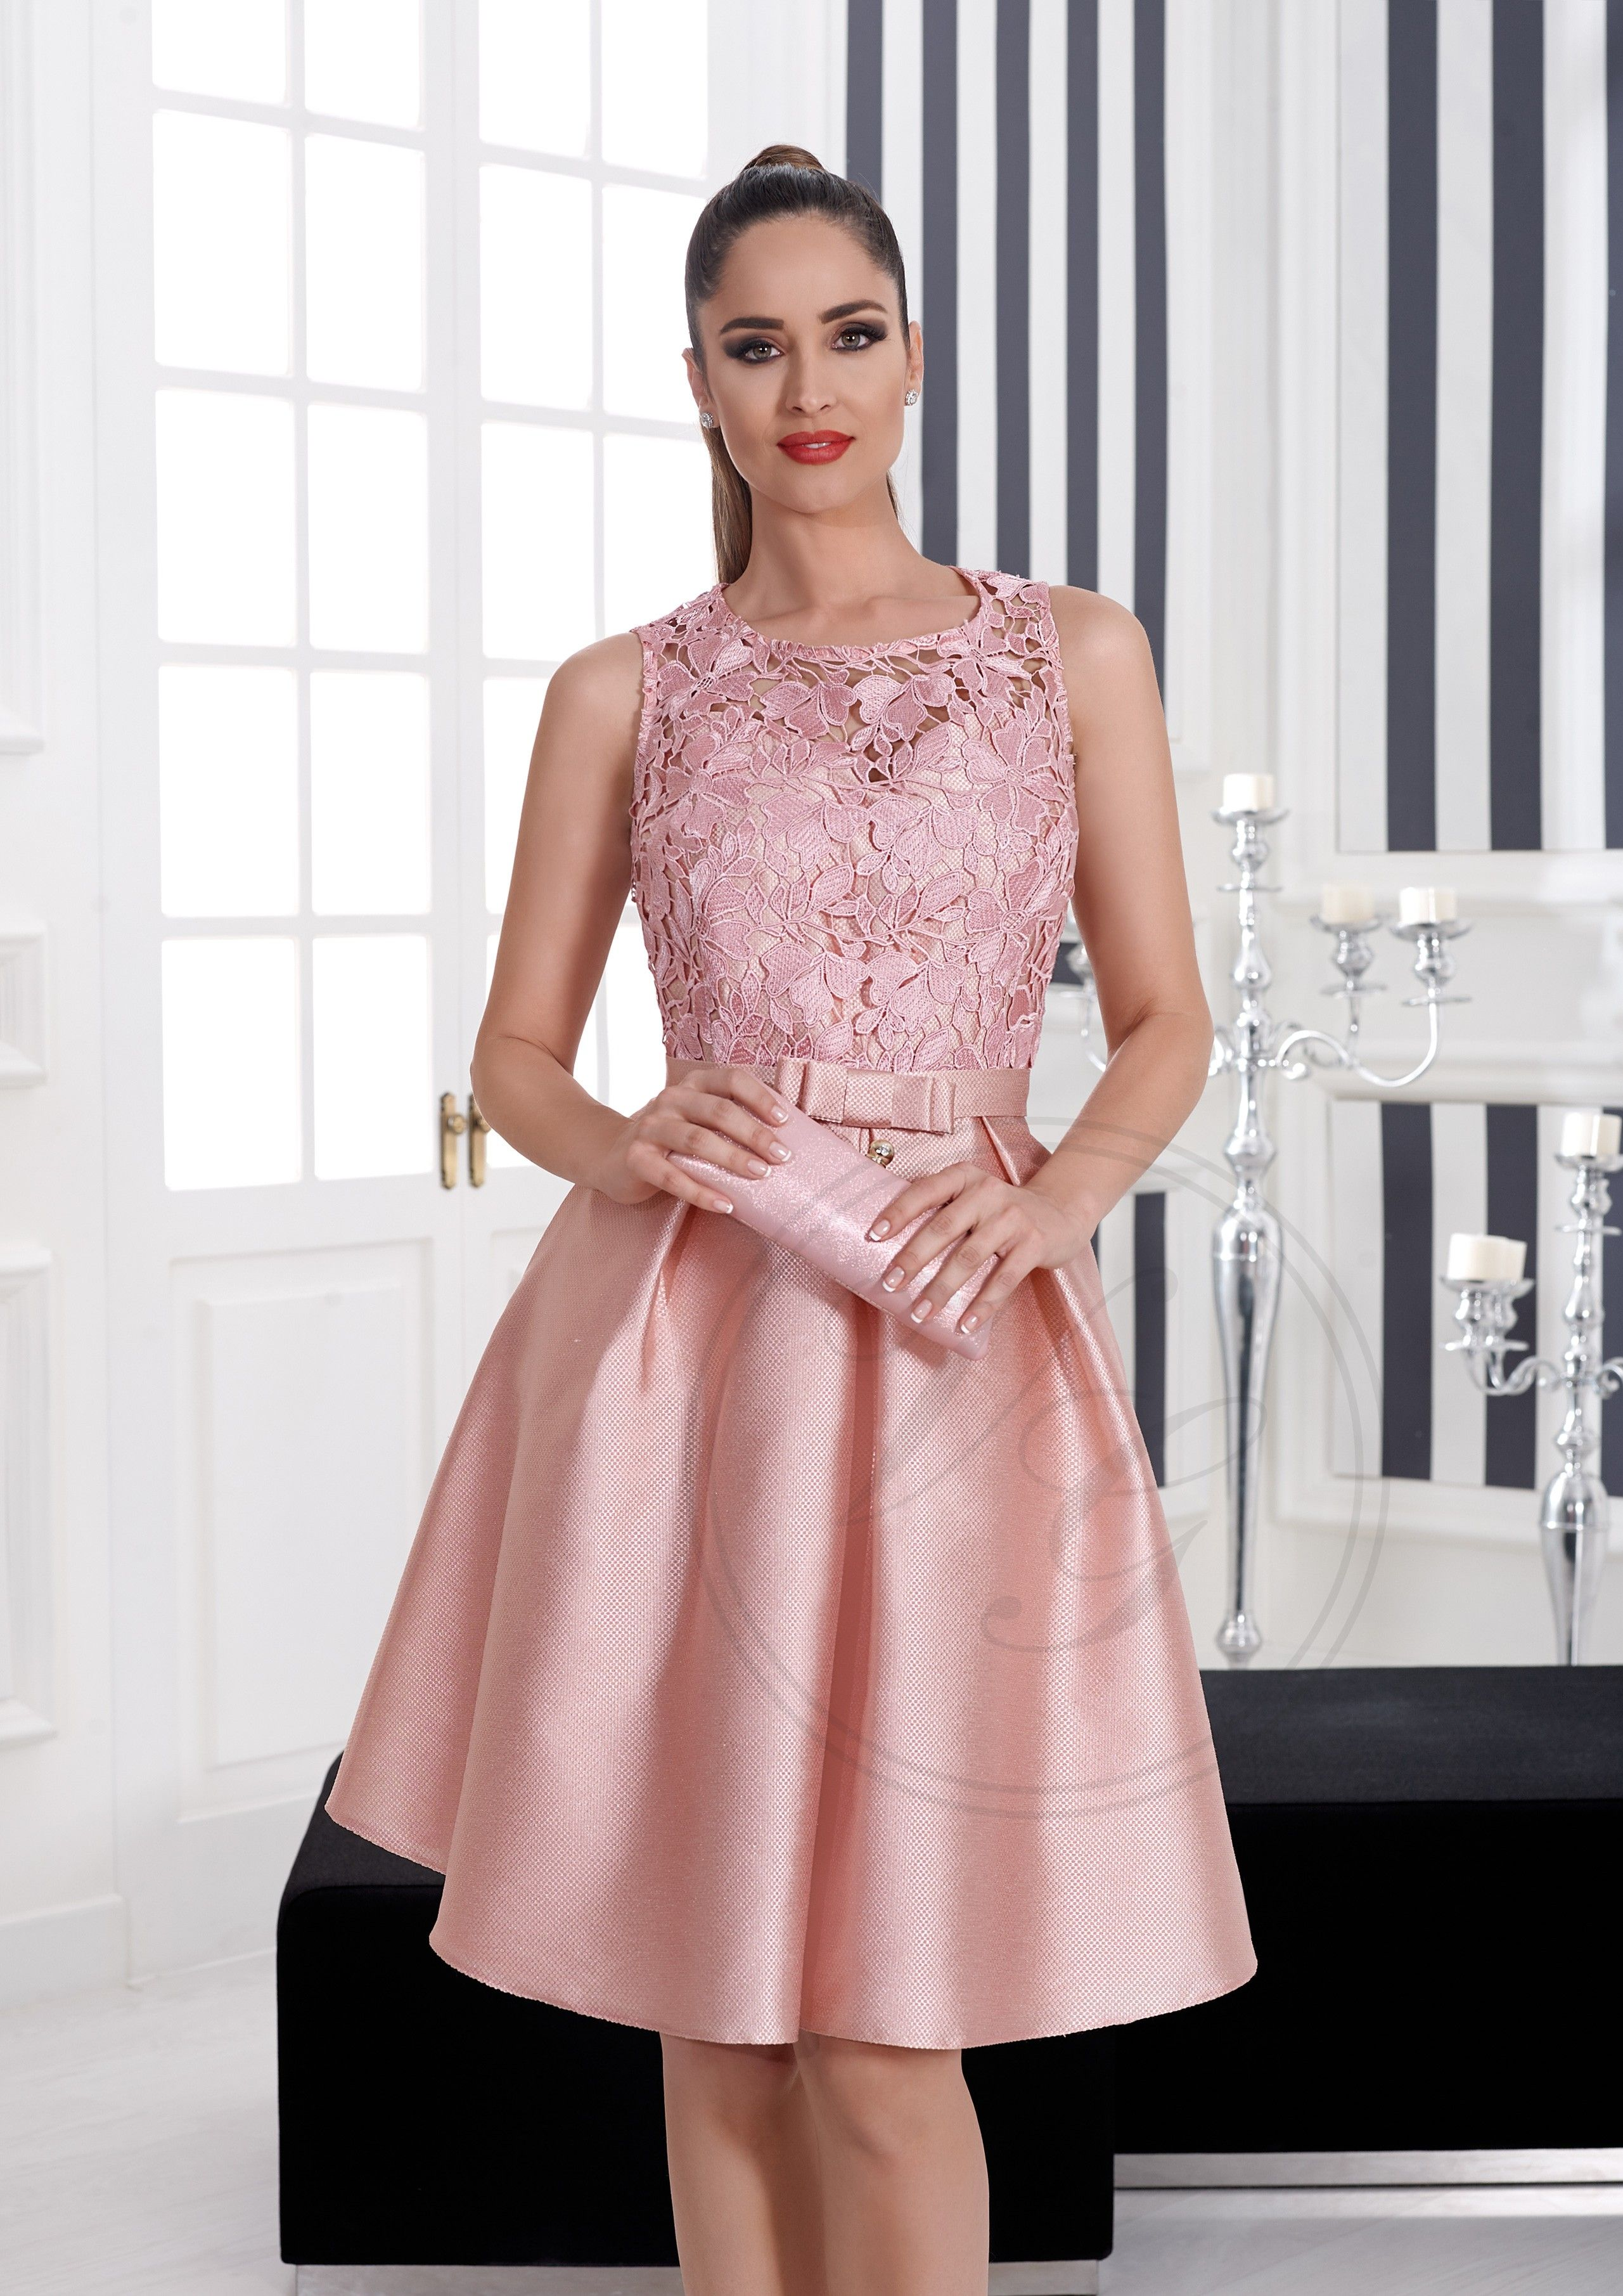 Pin de Benja Hongthong en Dress | Pinterest | Vestidos invitada ...